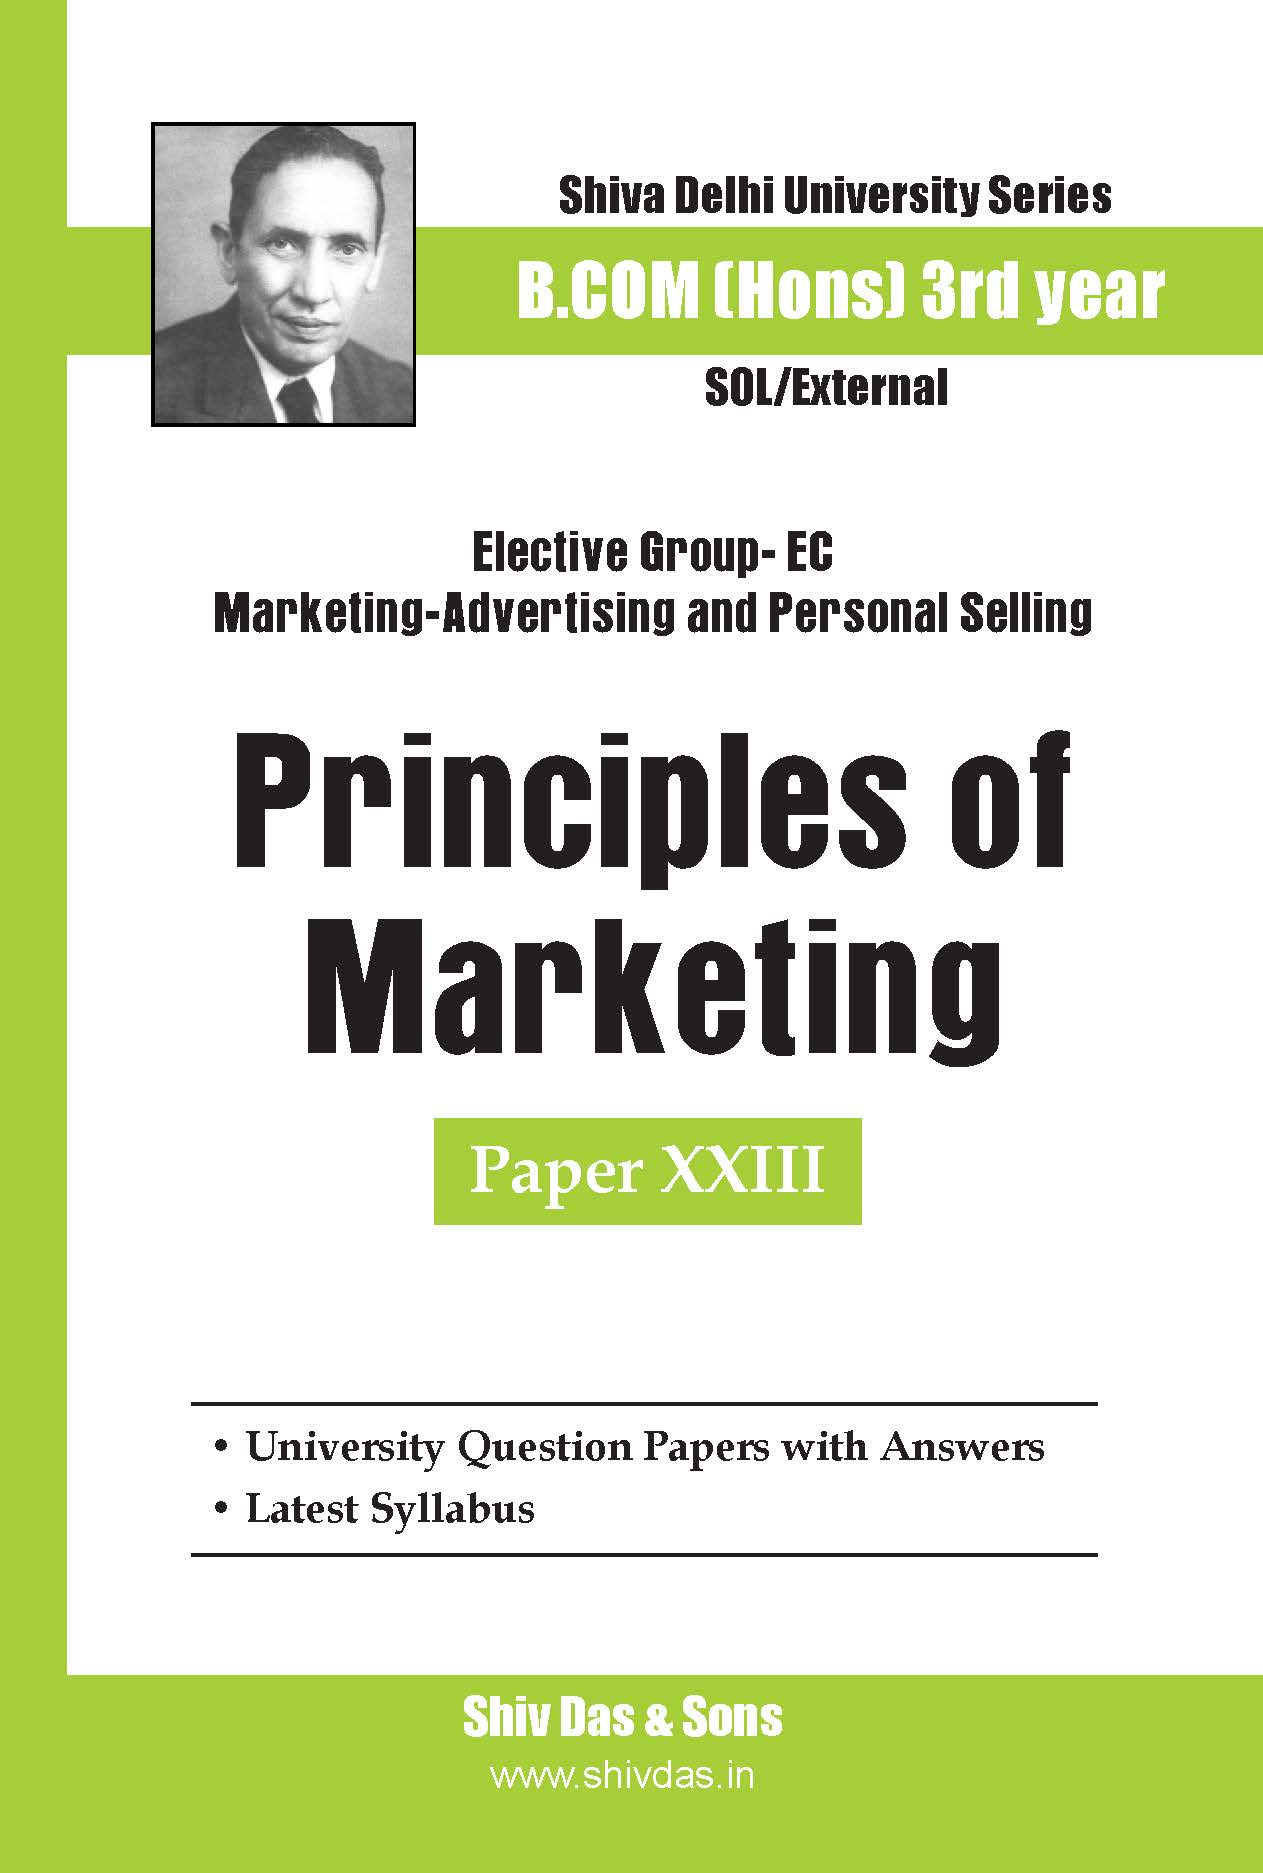 B.Com Hons-SOL/External-3rd Year-Principles of Marketing-Shiv Das-Delhi University Series